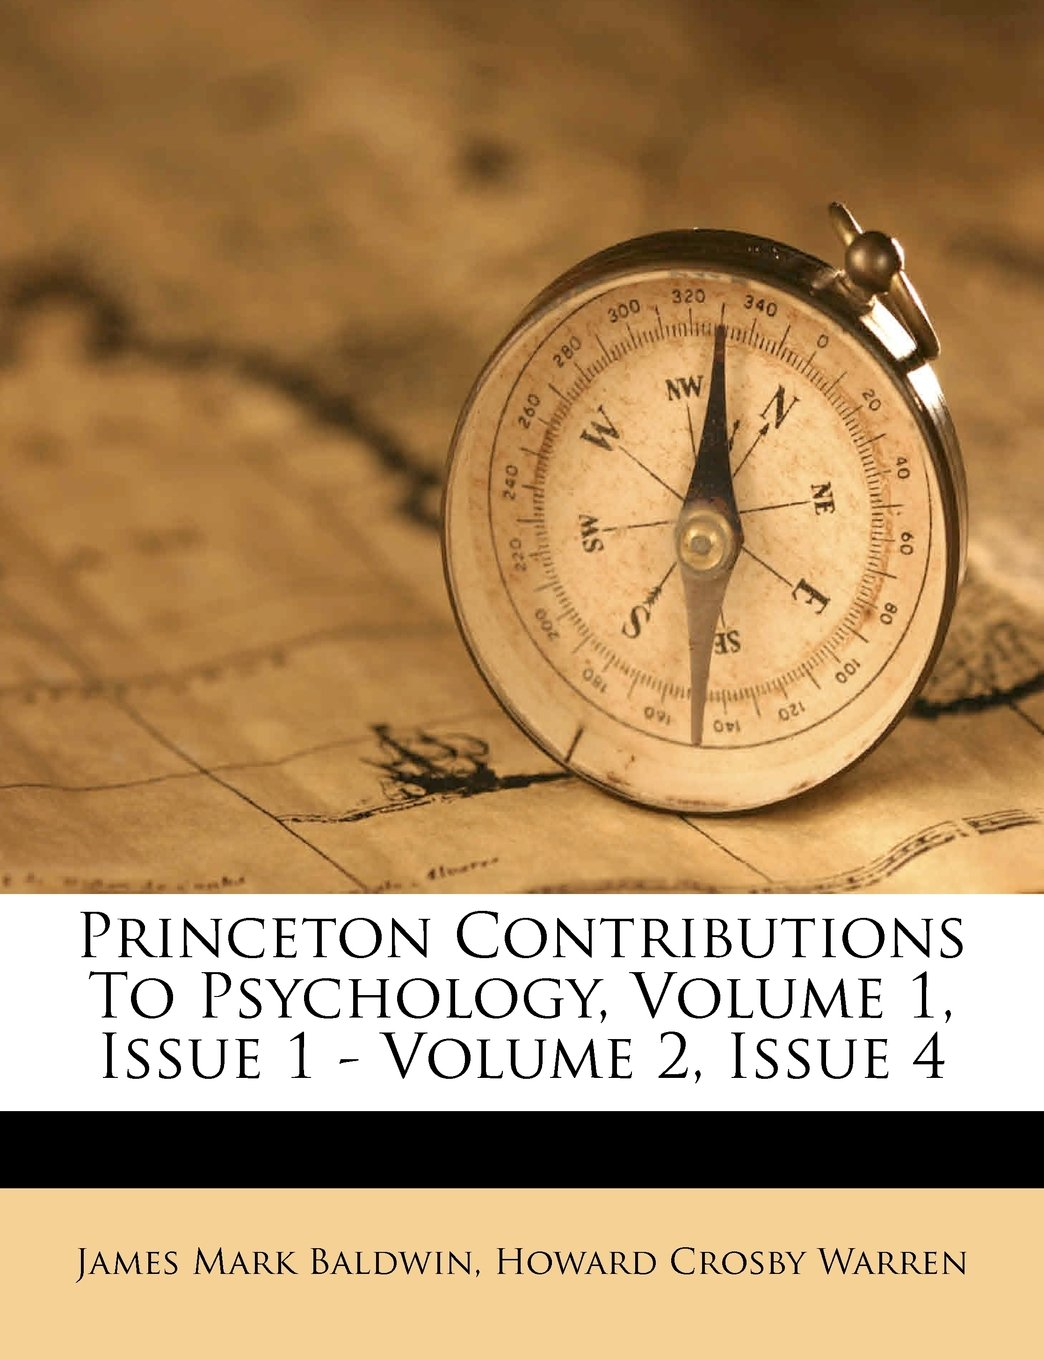 Princeton Contributions To Psychology, Volume 1, Issue 1 - Volume 2, Issue 4 PDF